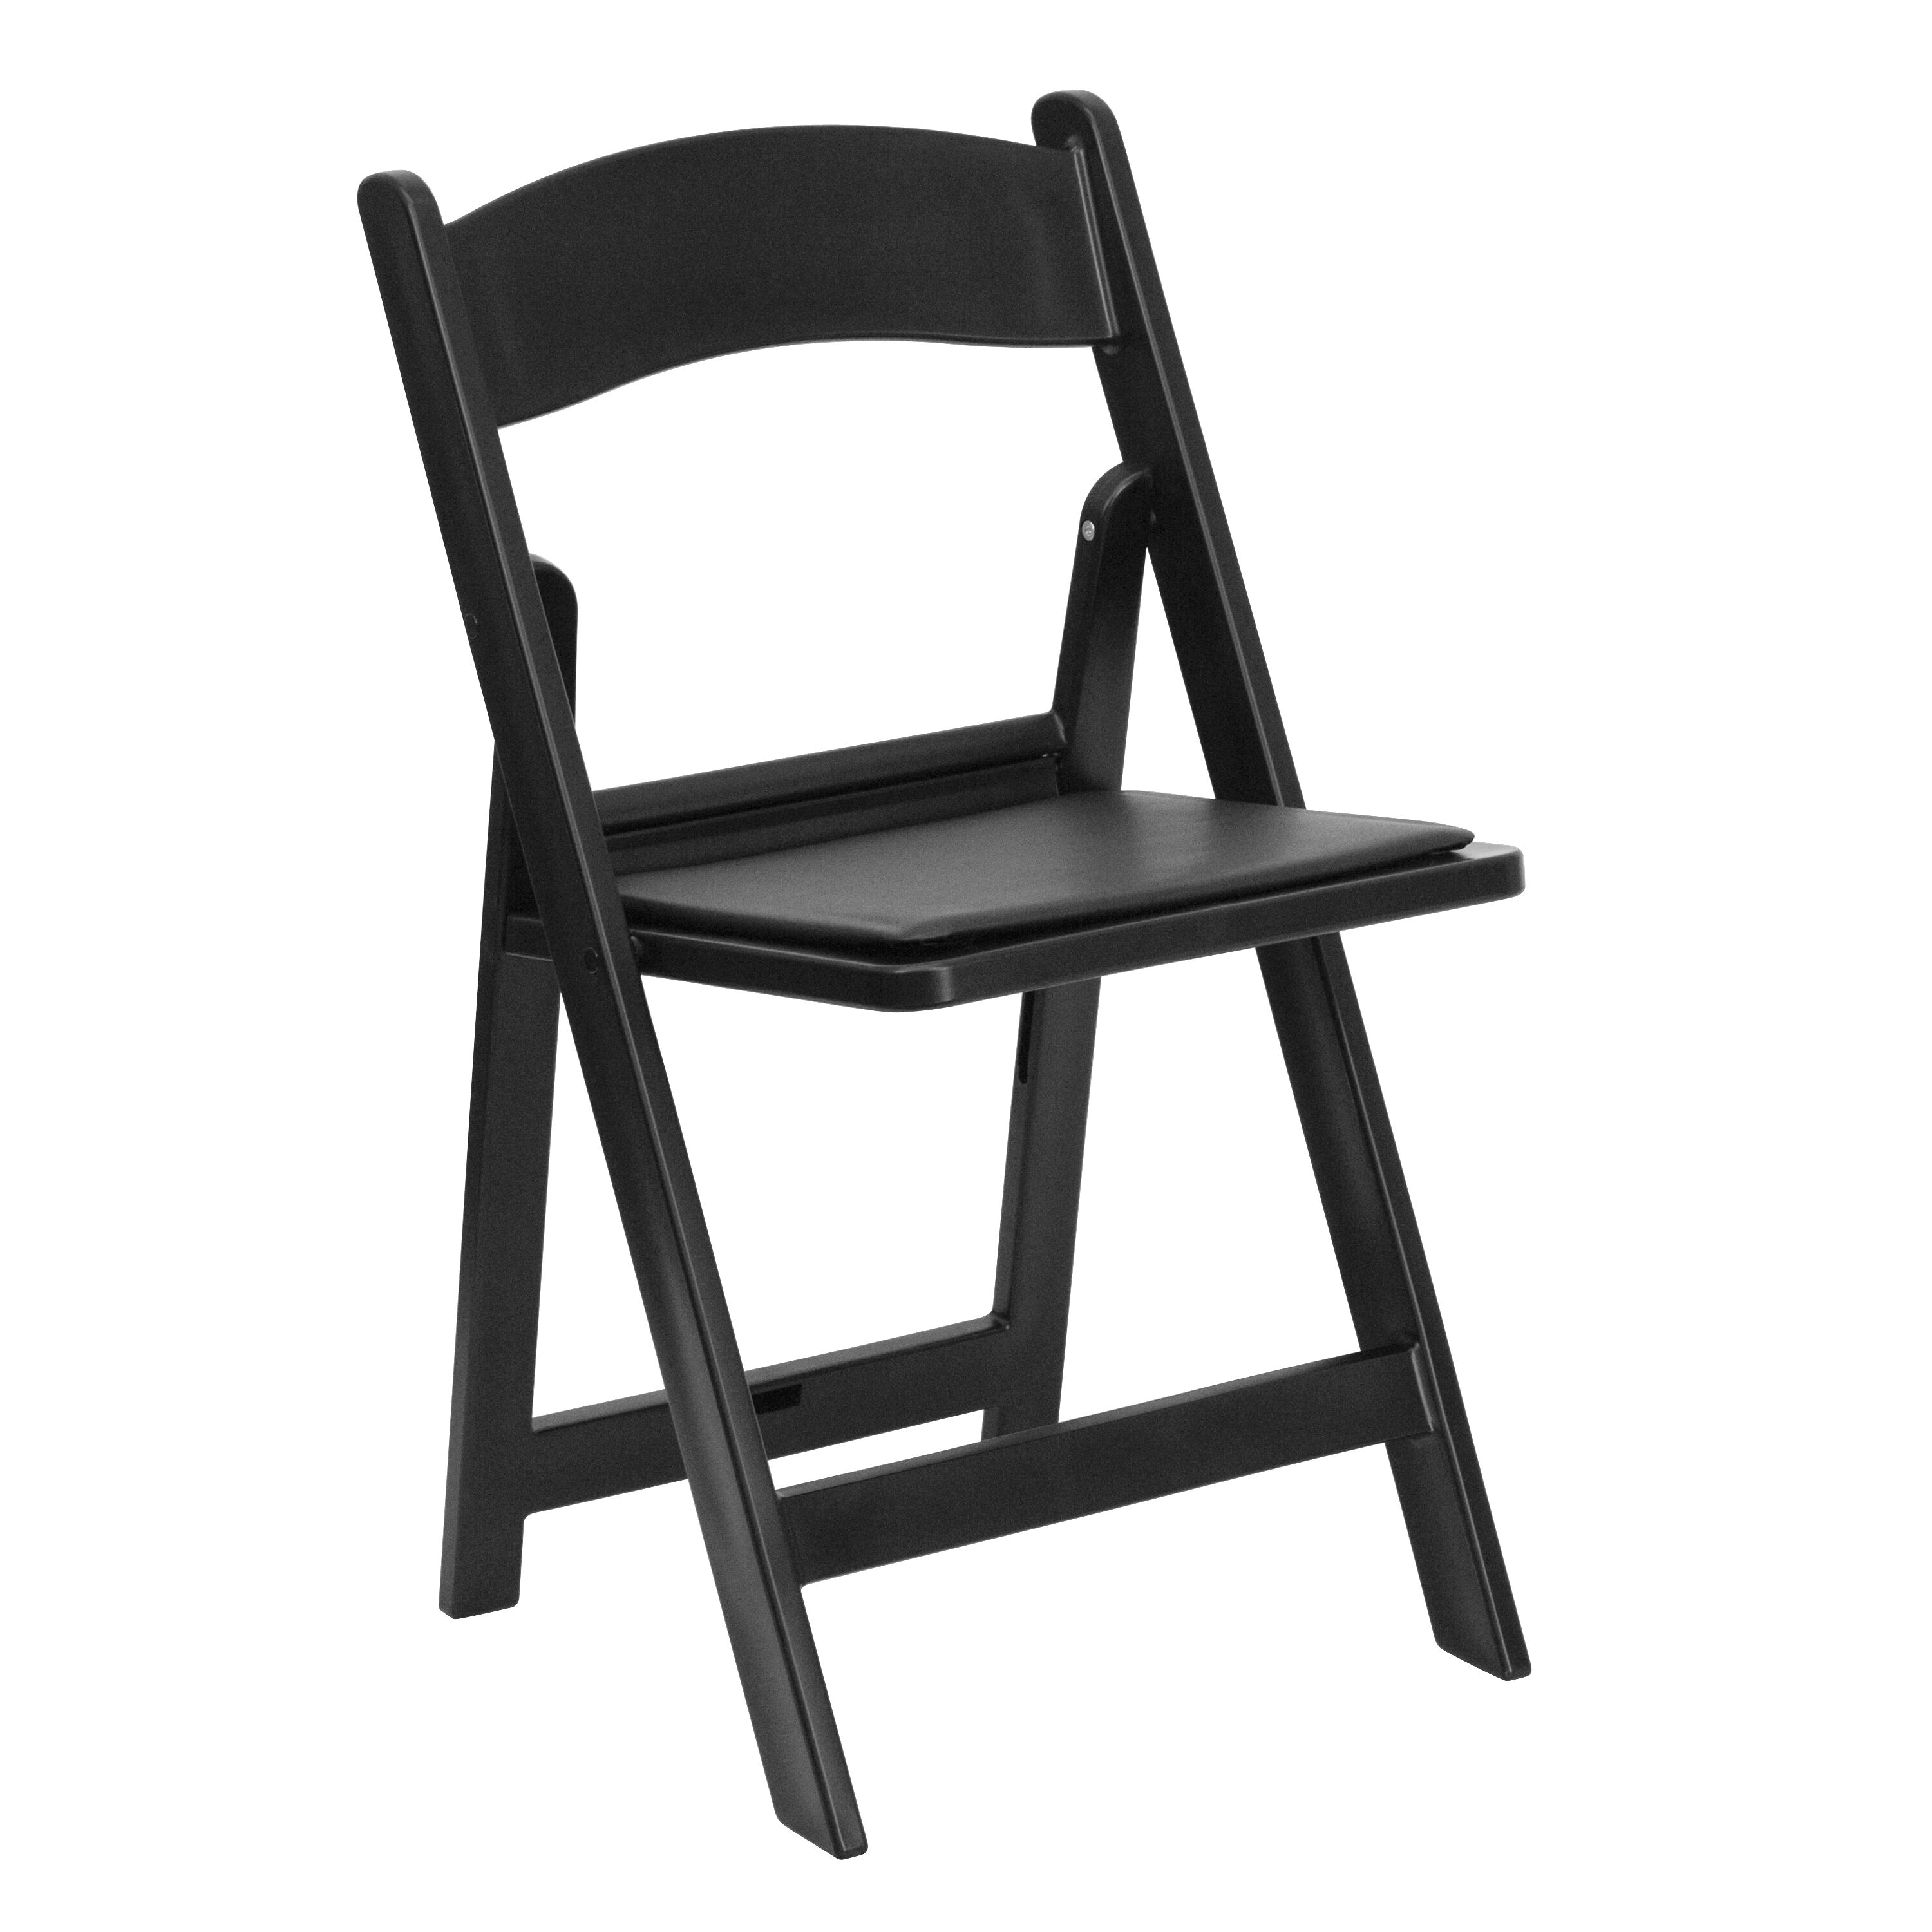 cushioned folding chairs salon shampoo bowl and chair foldingchairless metal plastic capacity black resin with vinyl padded seat